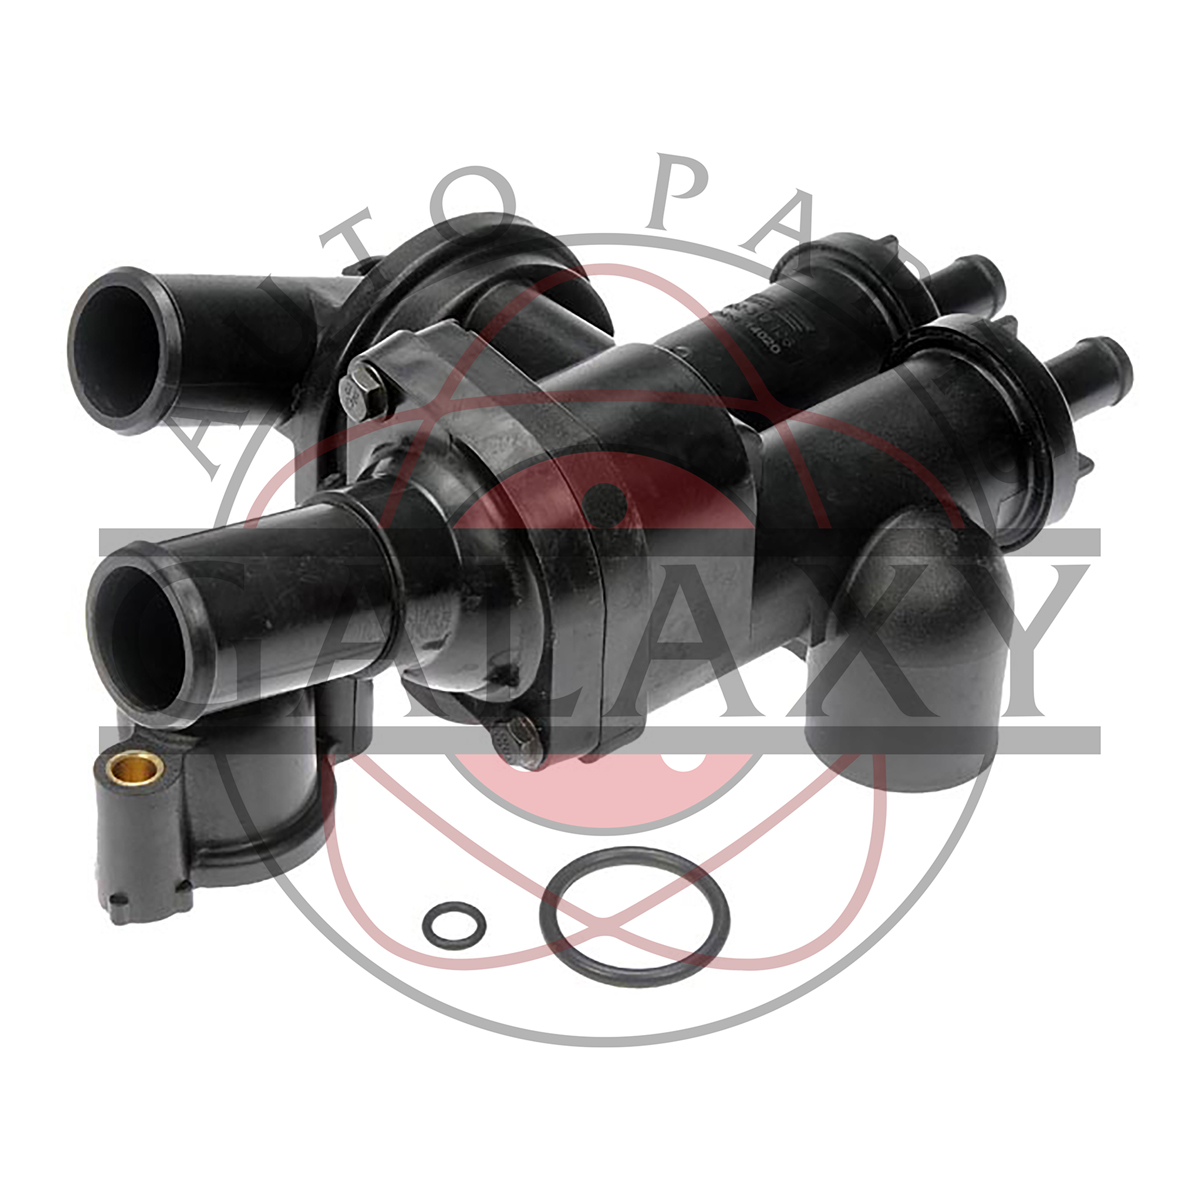 2008 chrysler sebring engine diagram right side  2008